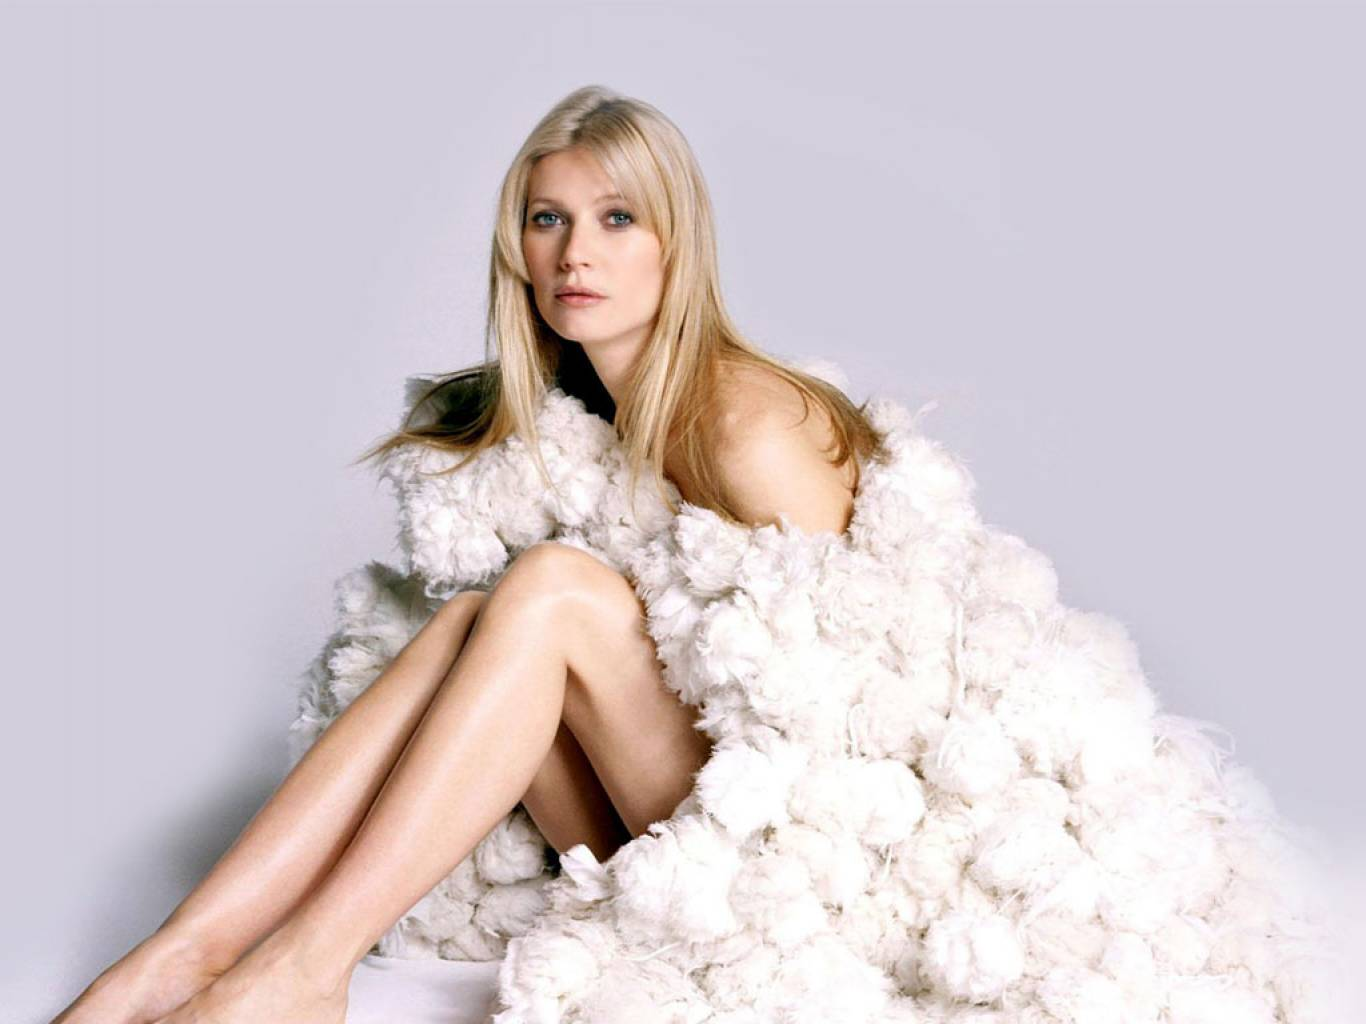 Gwyneth Paltrow Wallpapers